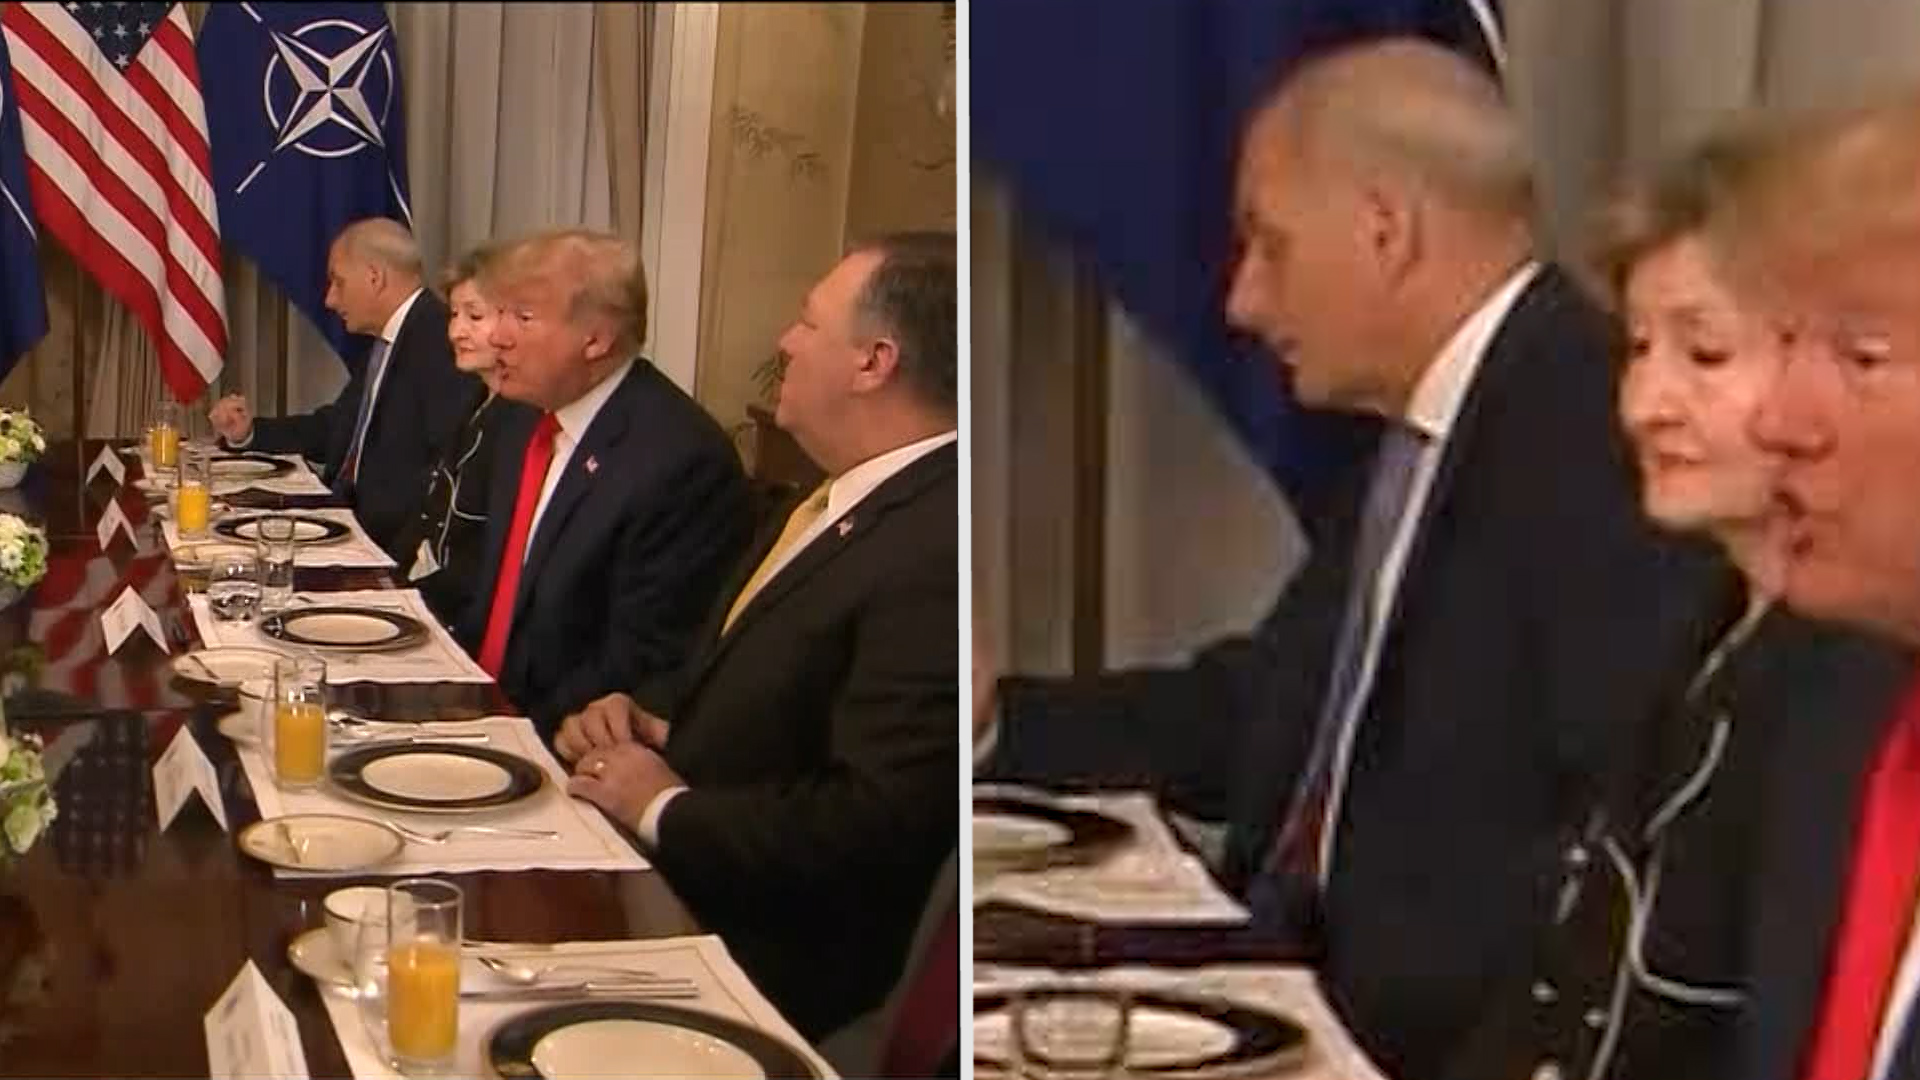 It was the cheese that let John Kelly down